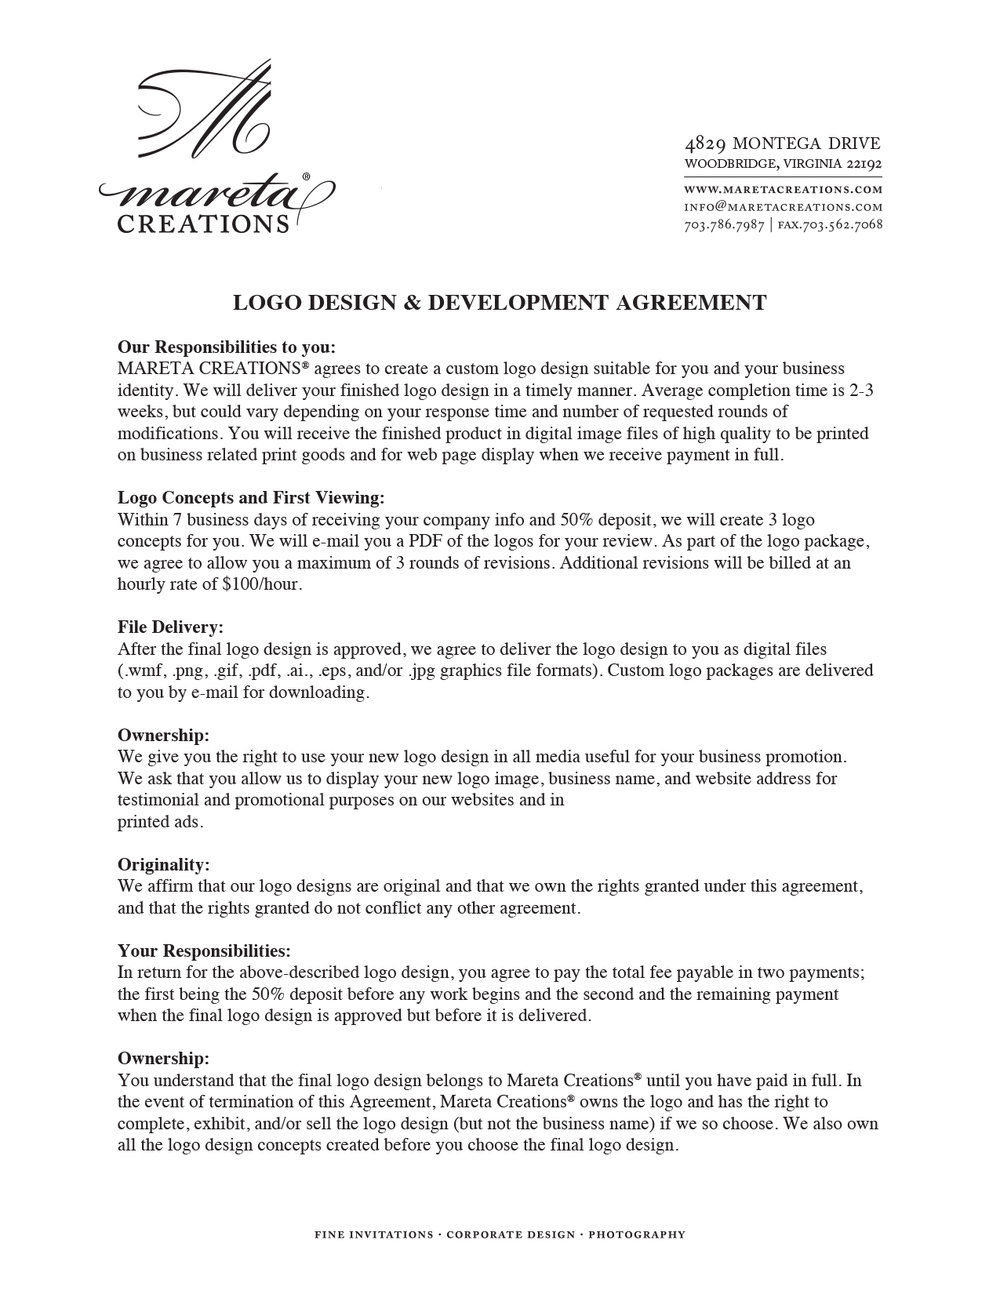 MaretaCreations-LogoAgreement.jpg